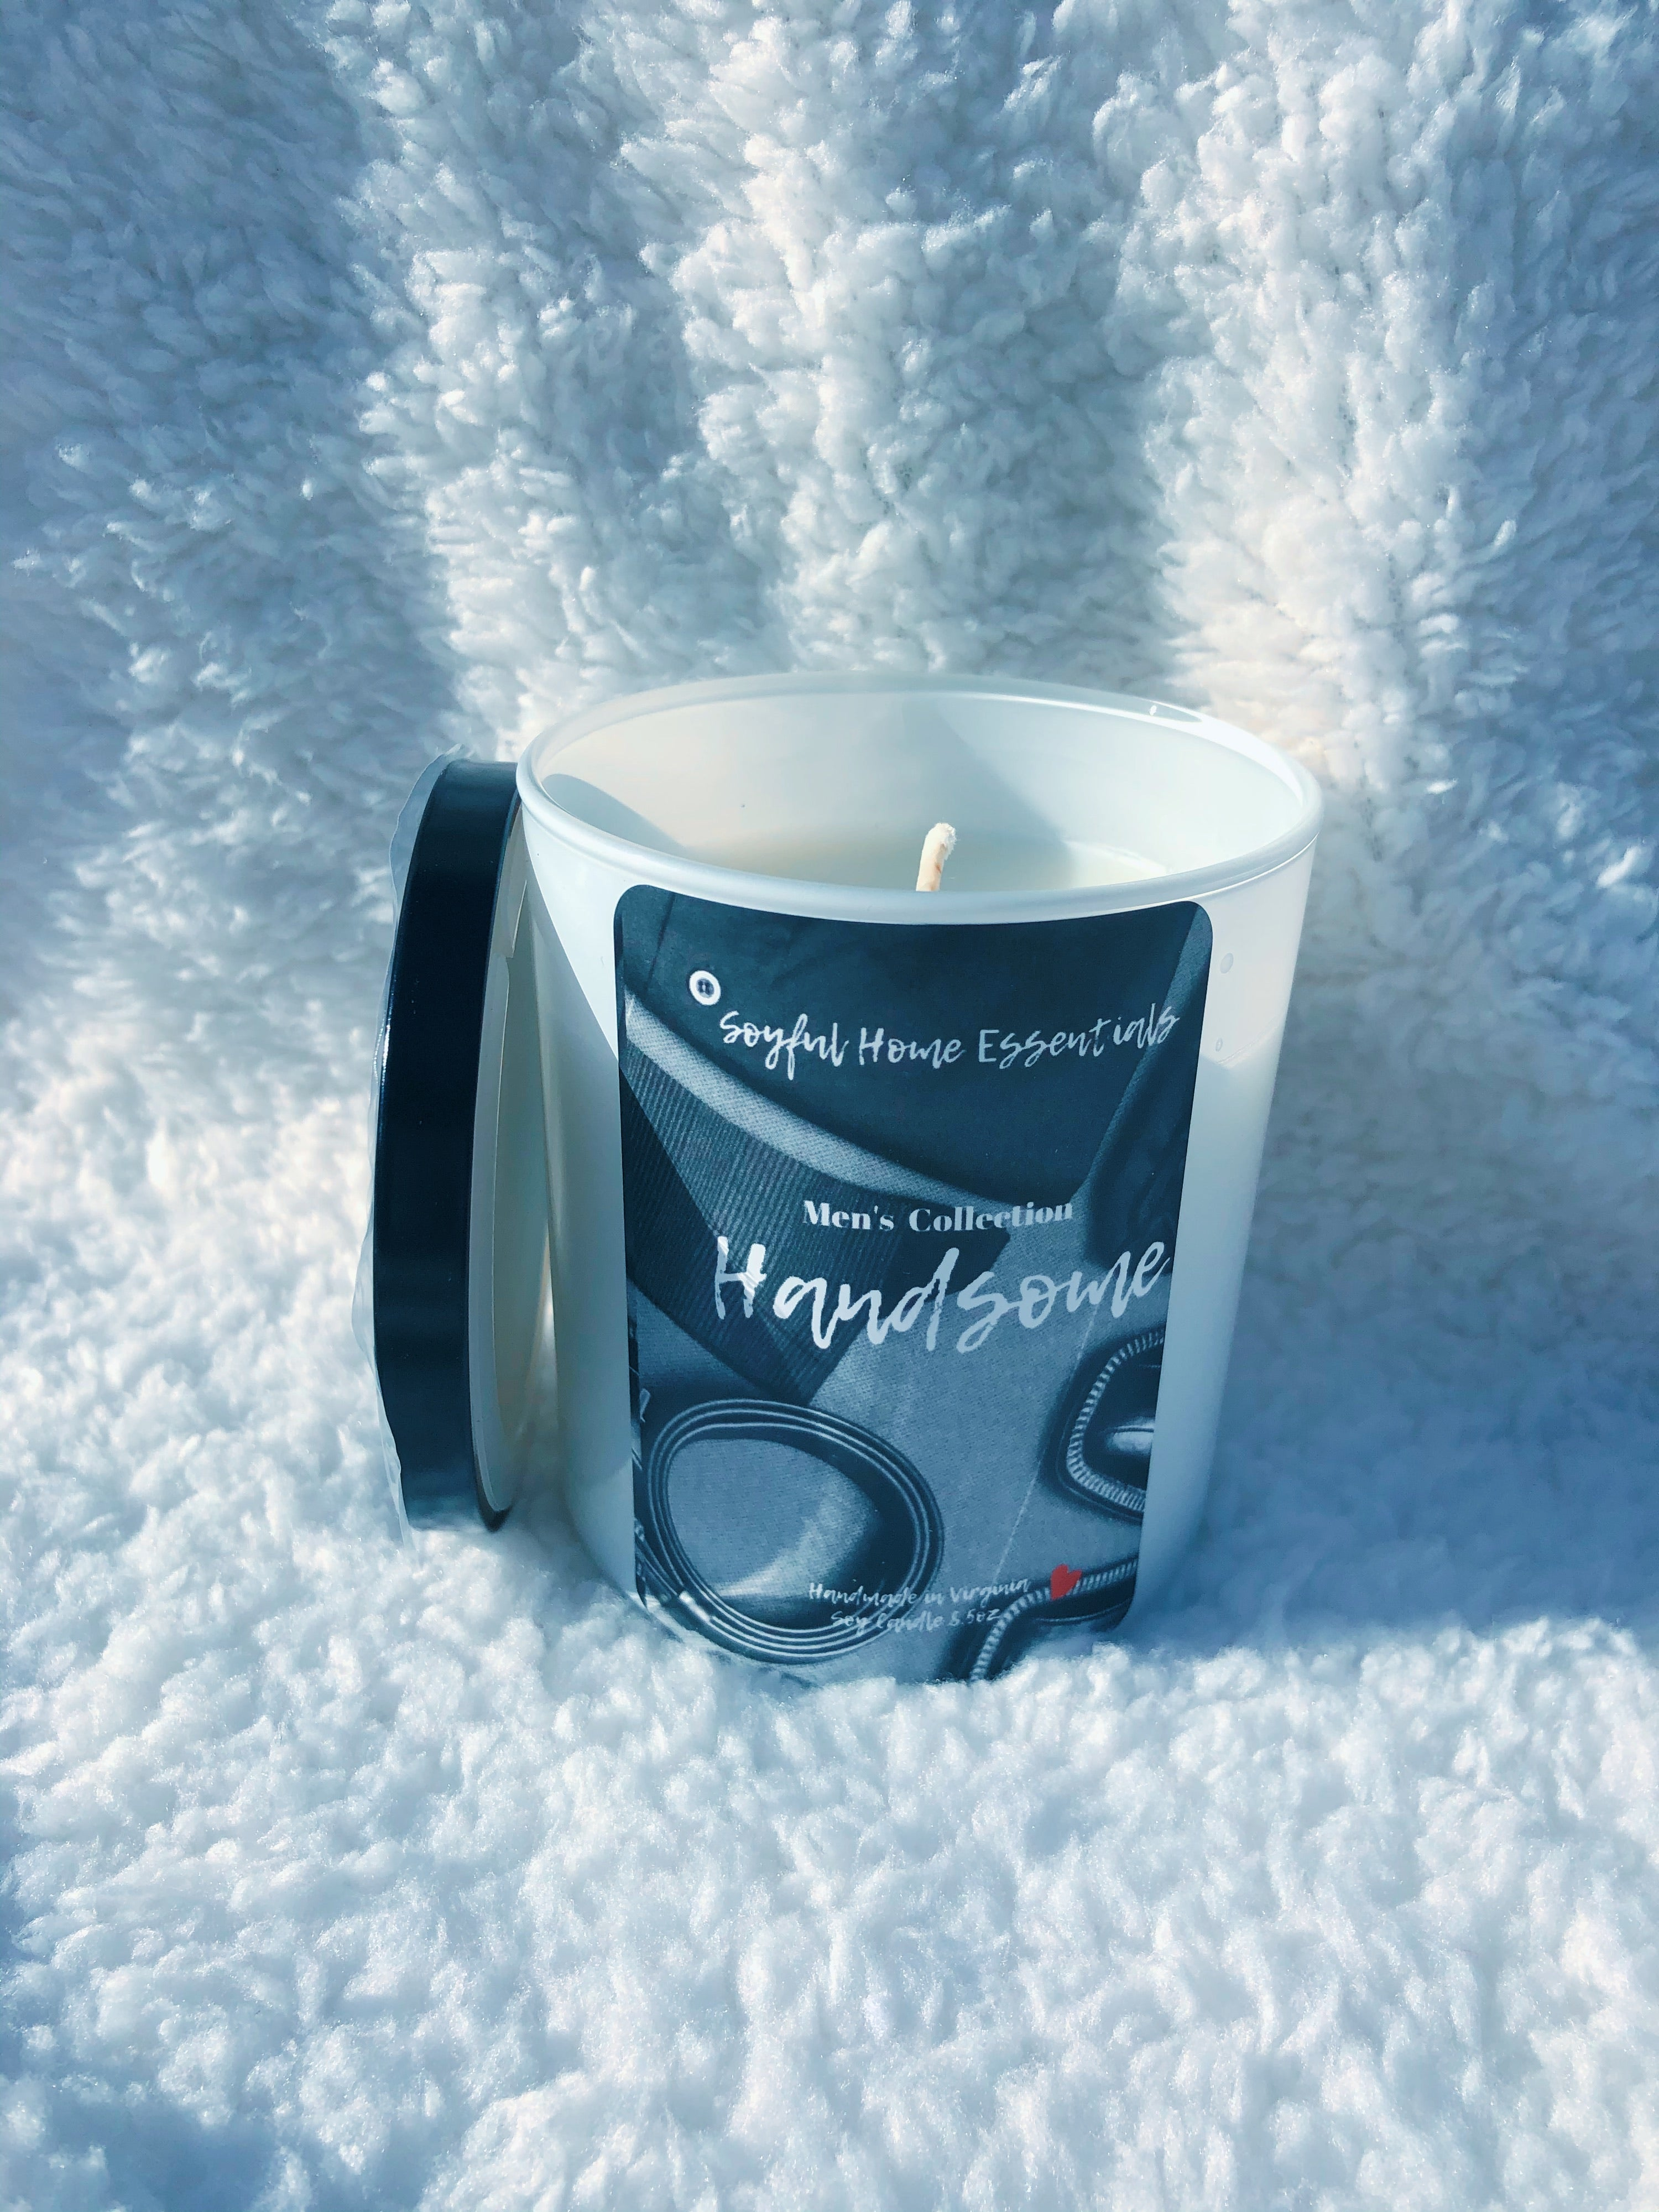 Handsome Candle